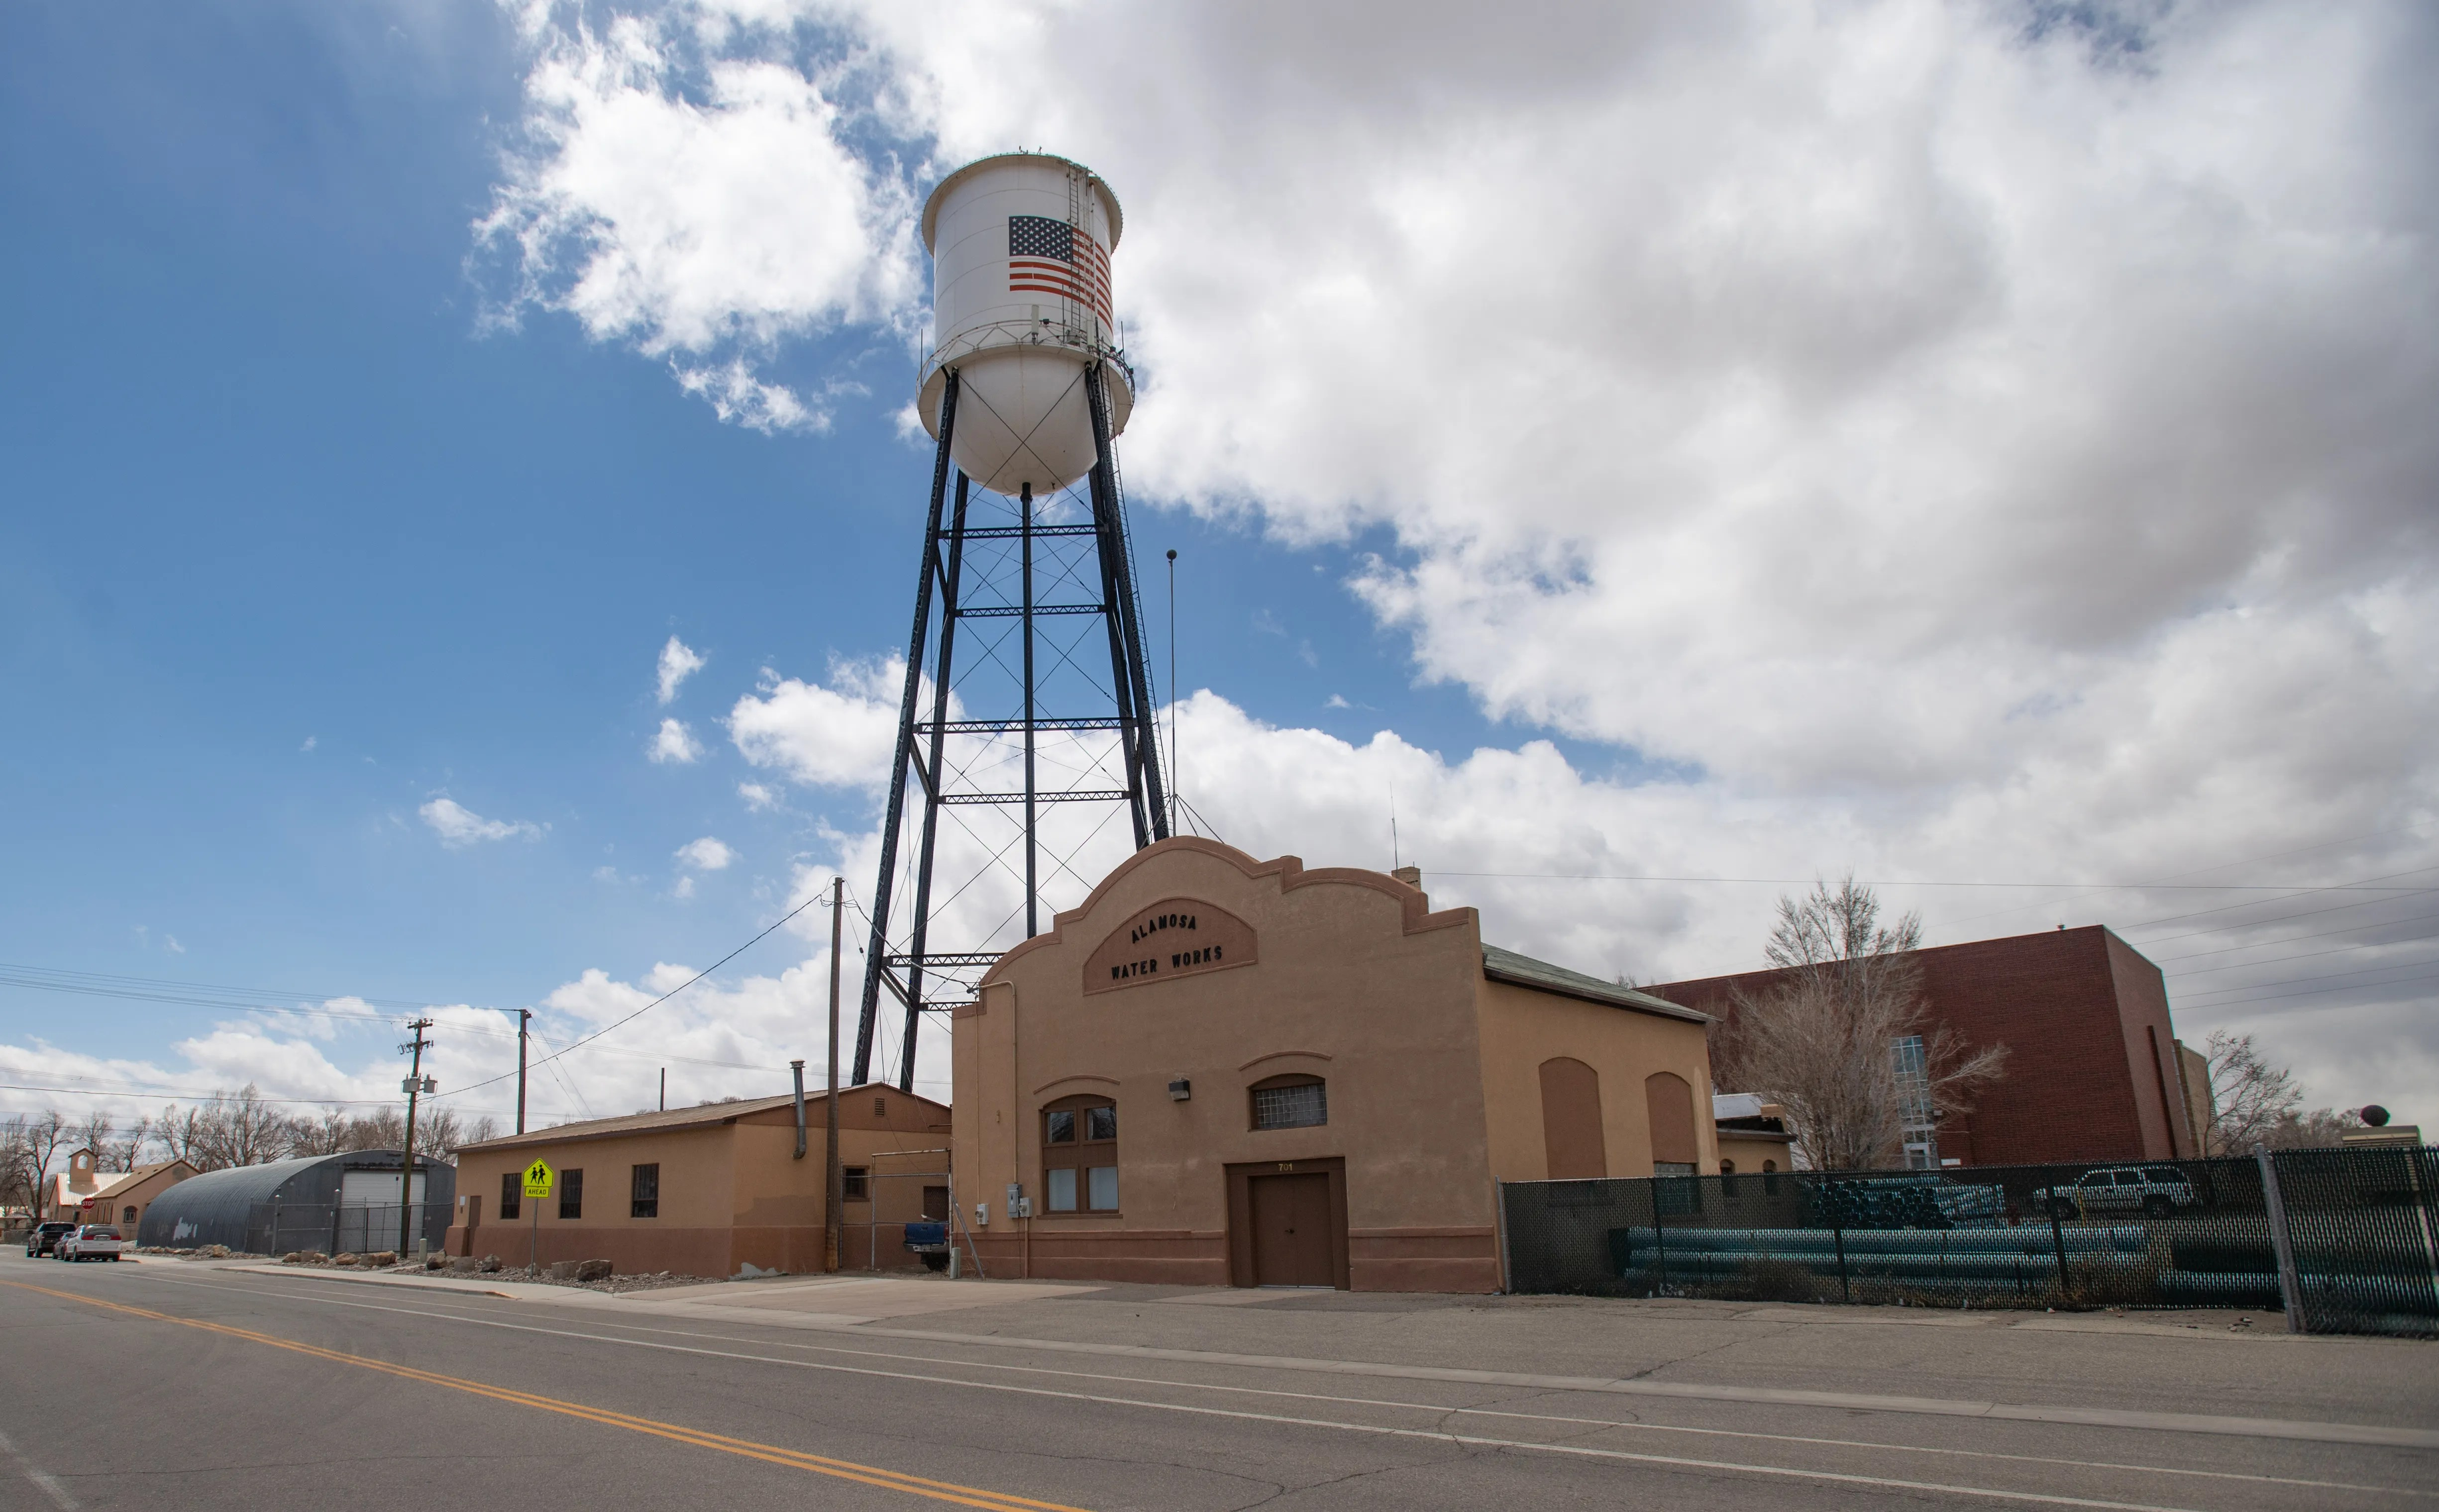 In Alamosa, Colorado, an estimated 1,300 people got sick and one died after a salmonella outbreak started in a municipal water storage tank in 2008.